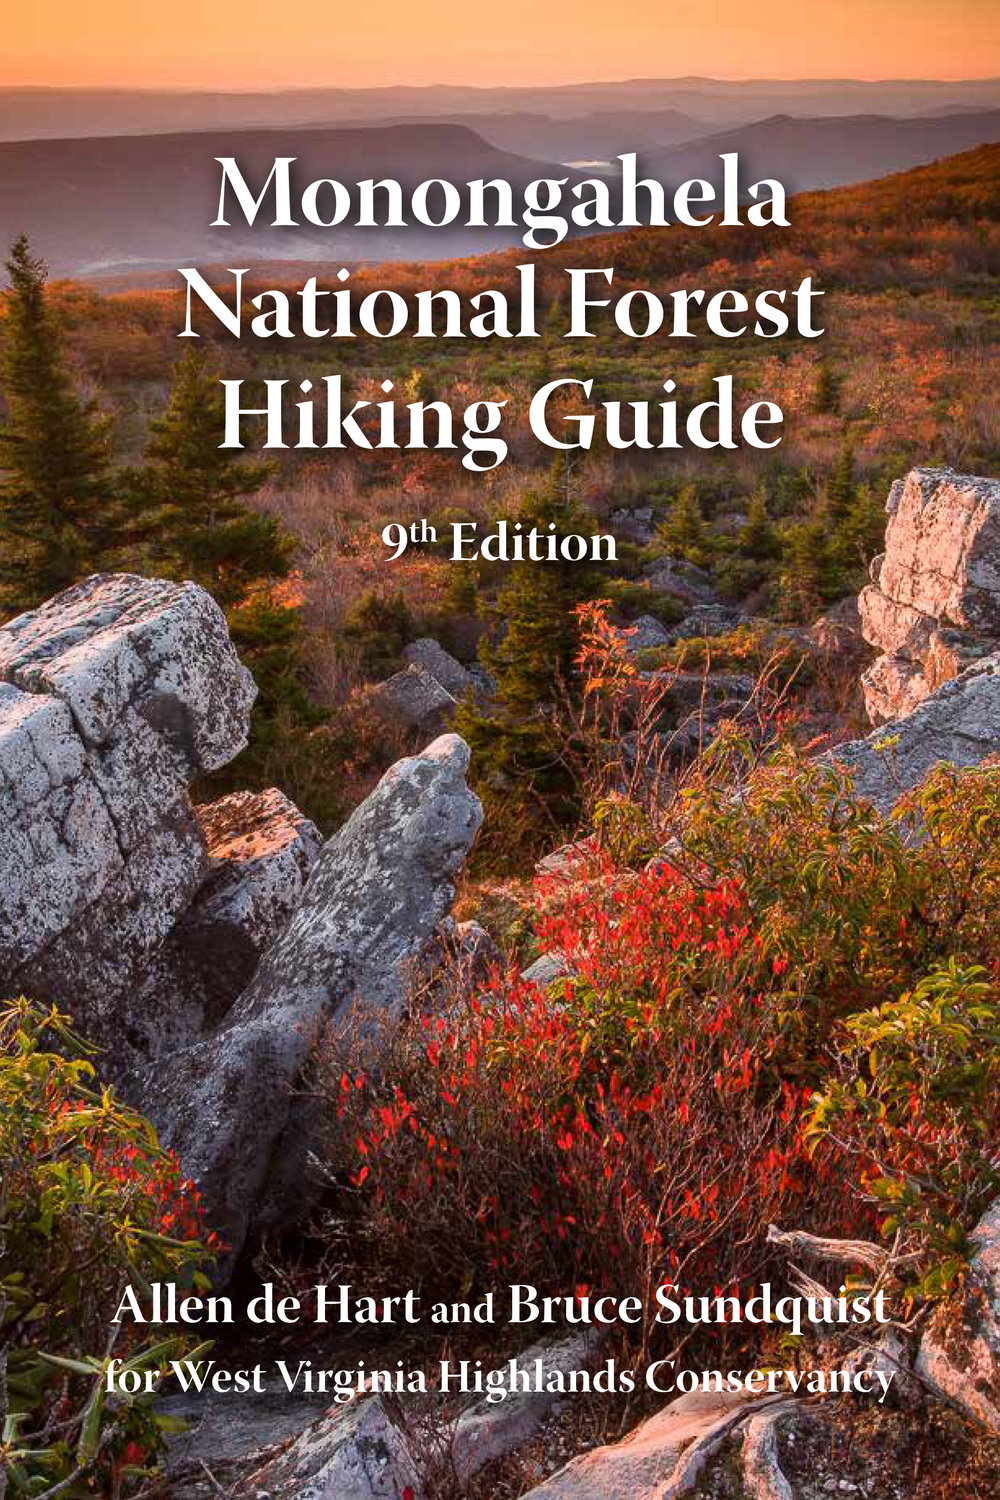 Mon_Hiking_Guide_coverjpg